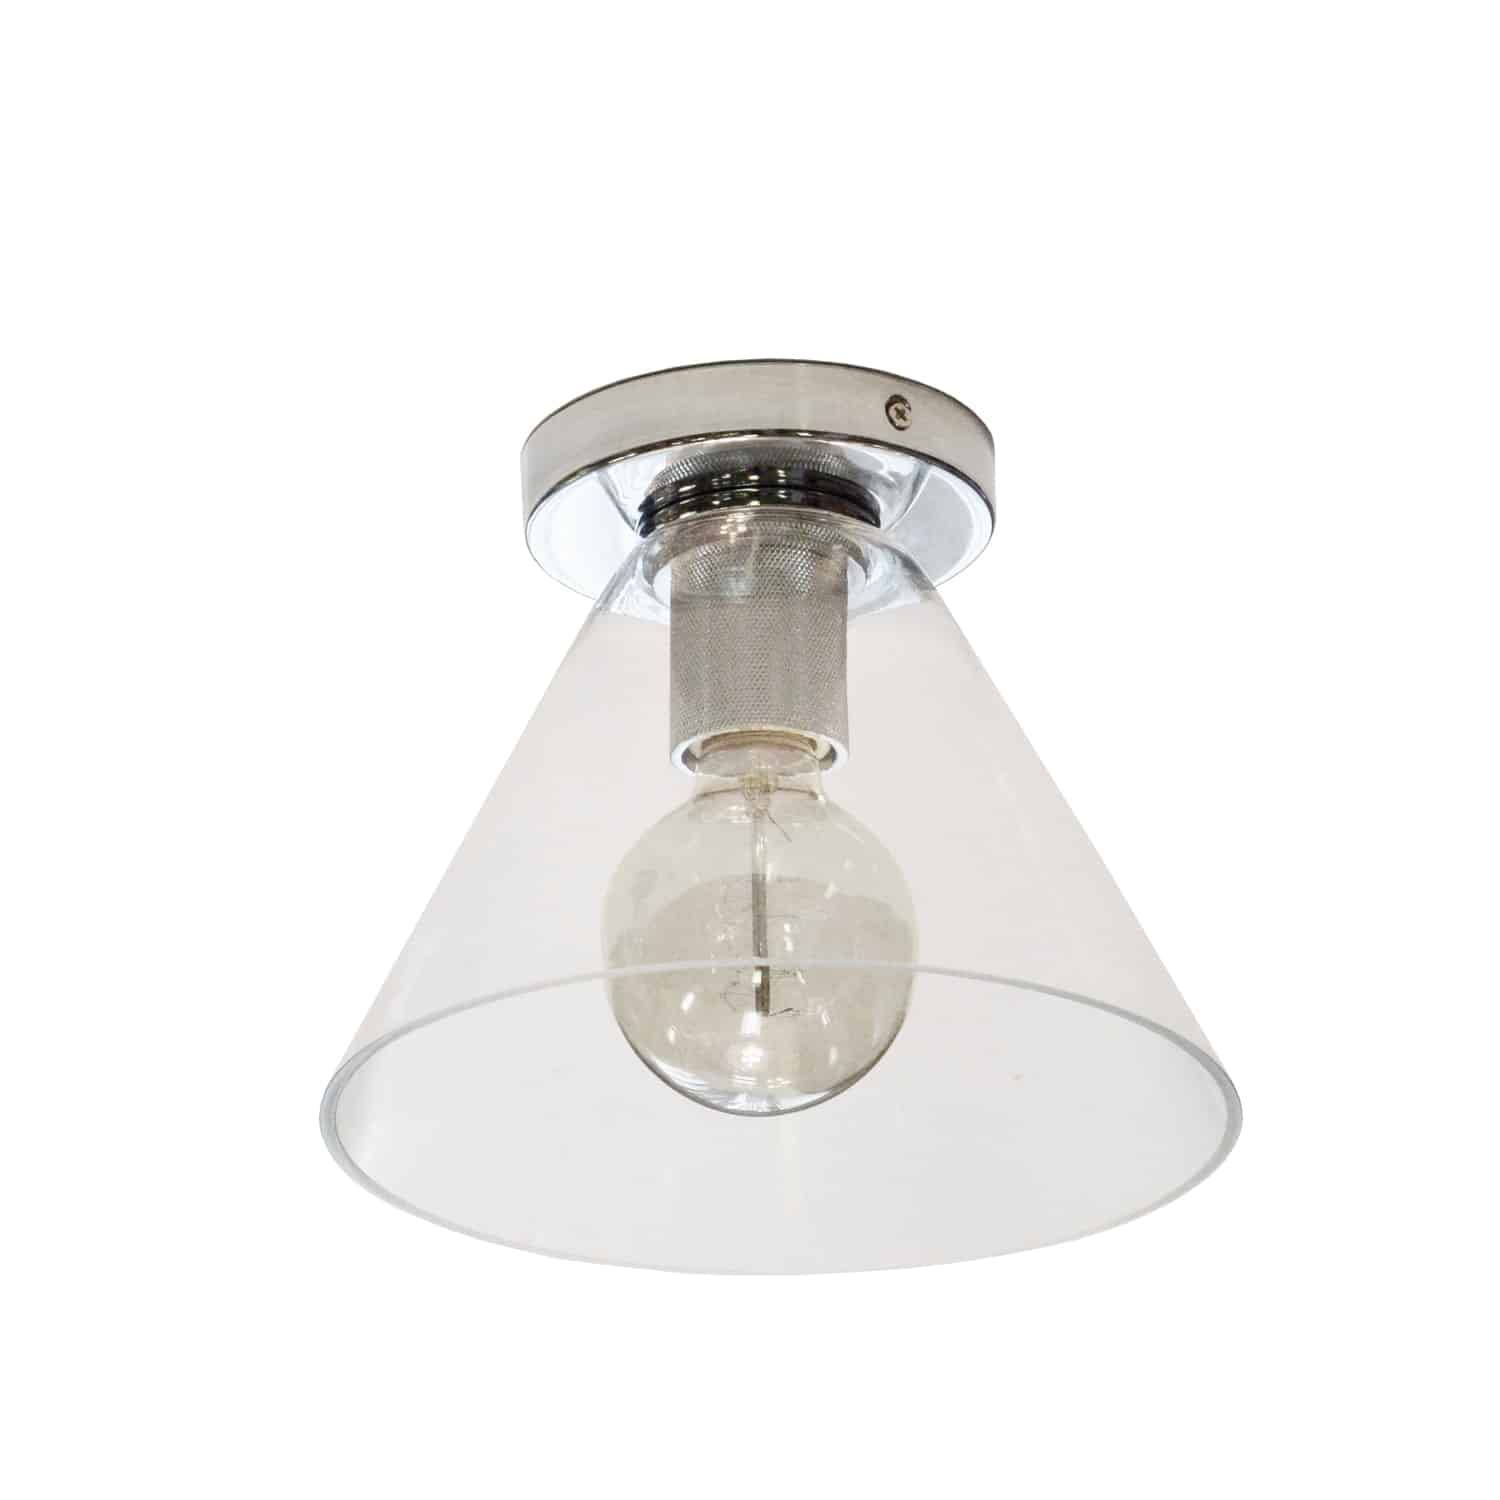 1 Light Incandescent Flush Mount, Polished Chrome with Clear Glass